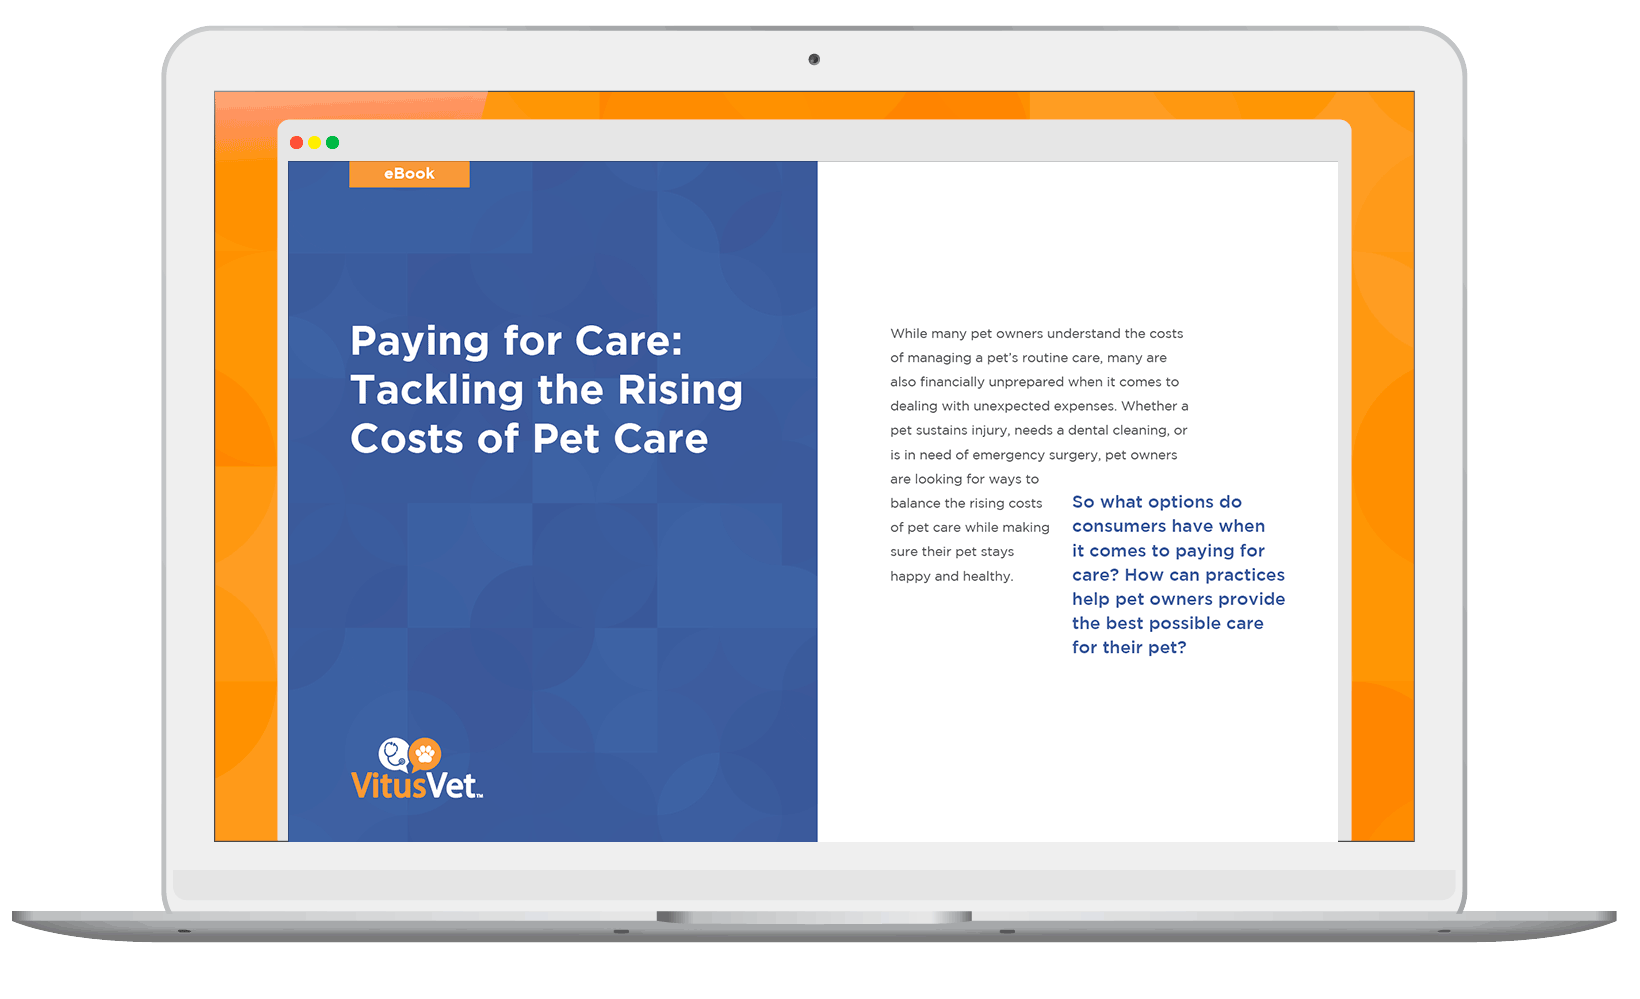 paying-for-care-main-image